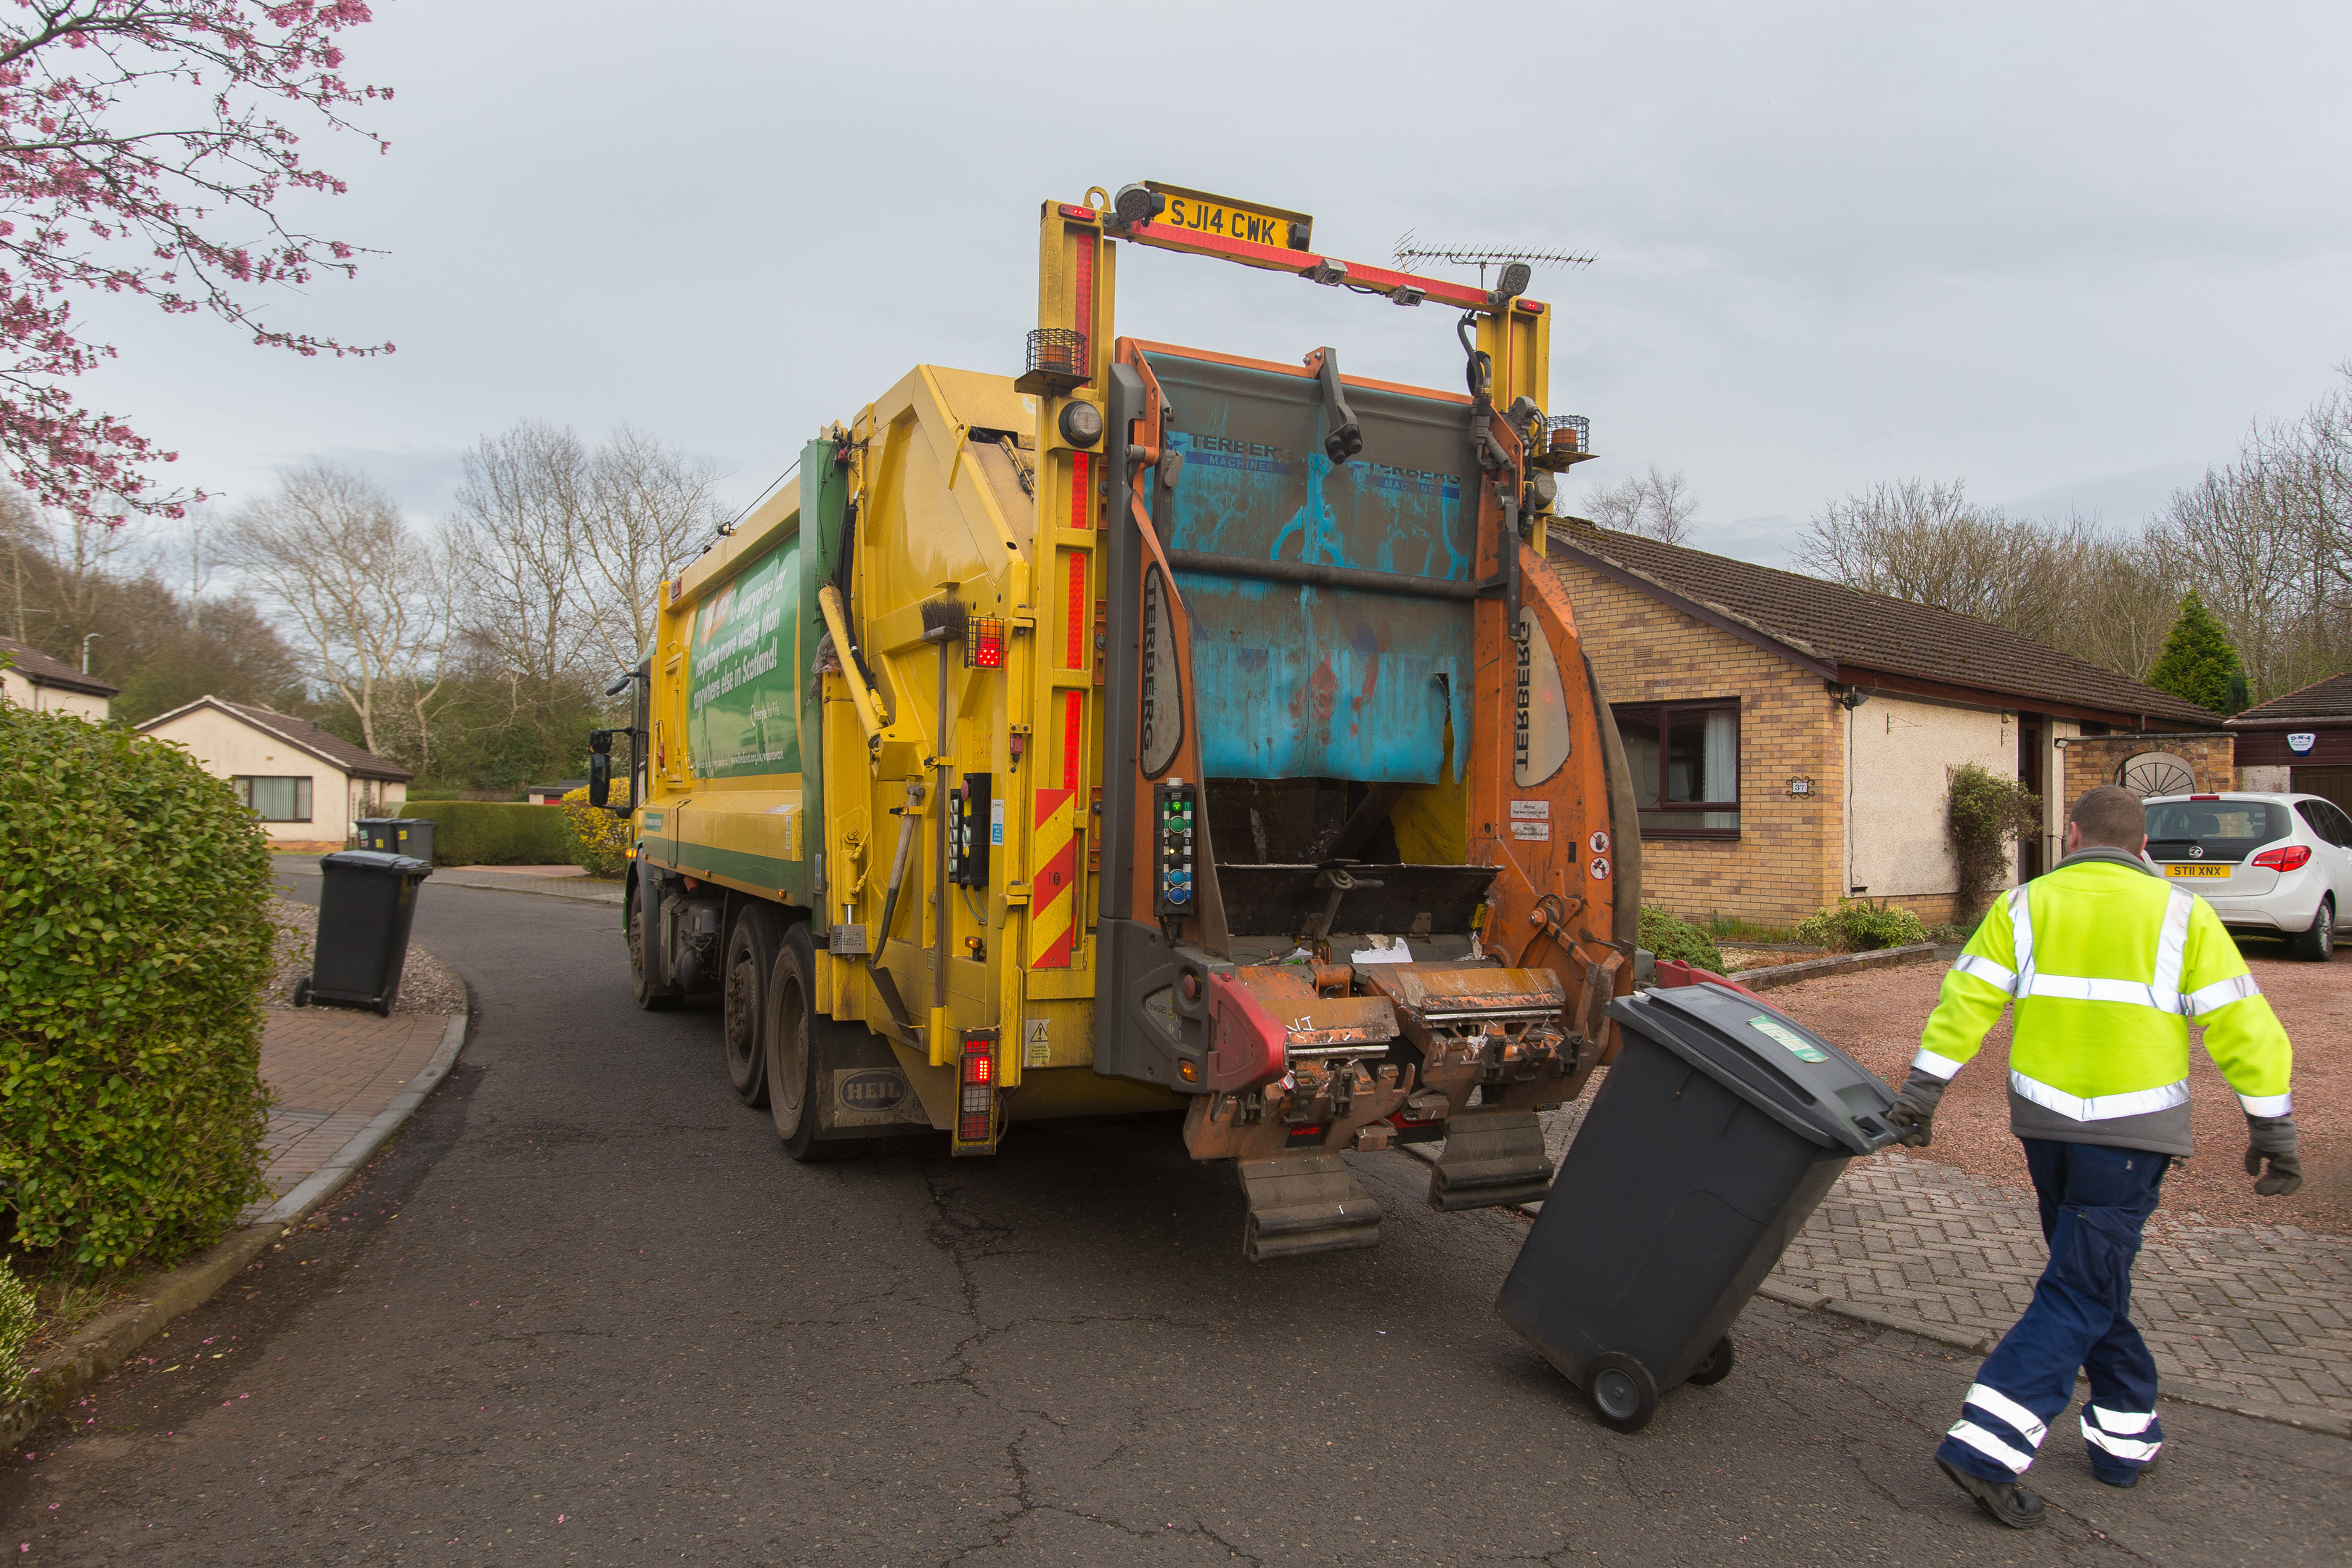 Wheelie bins being emptied in Glenrothes.